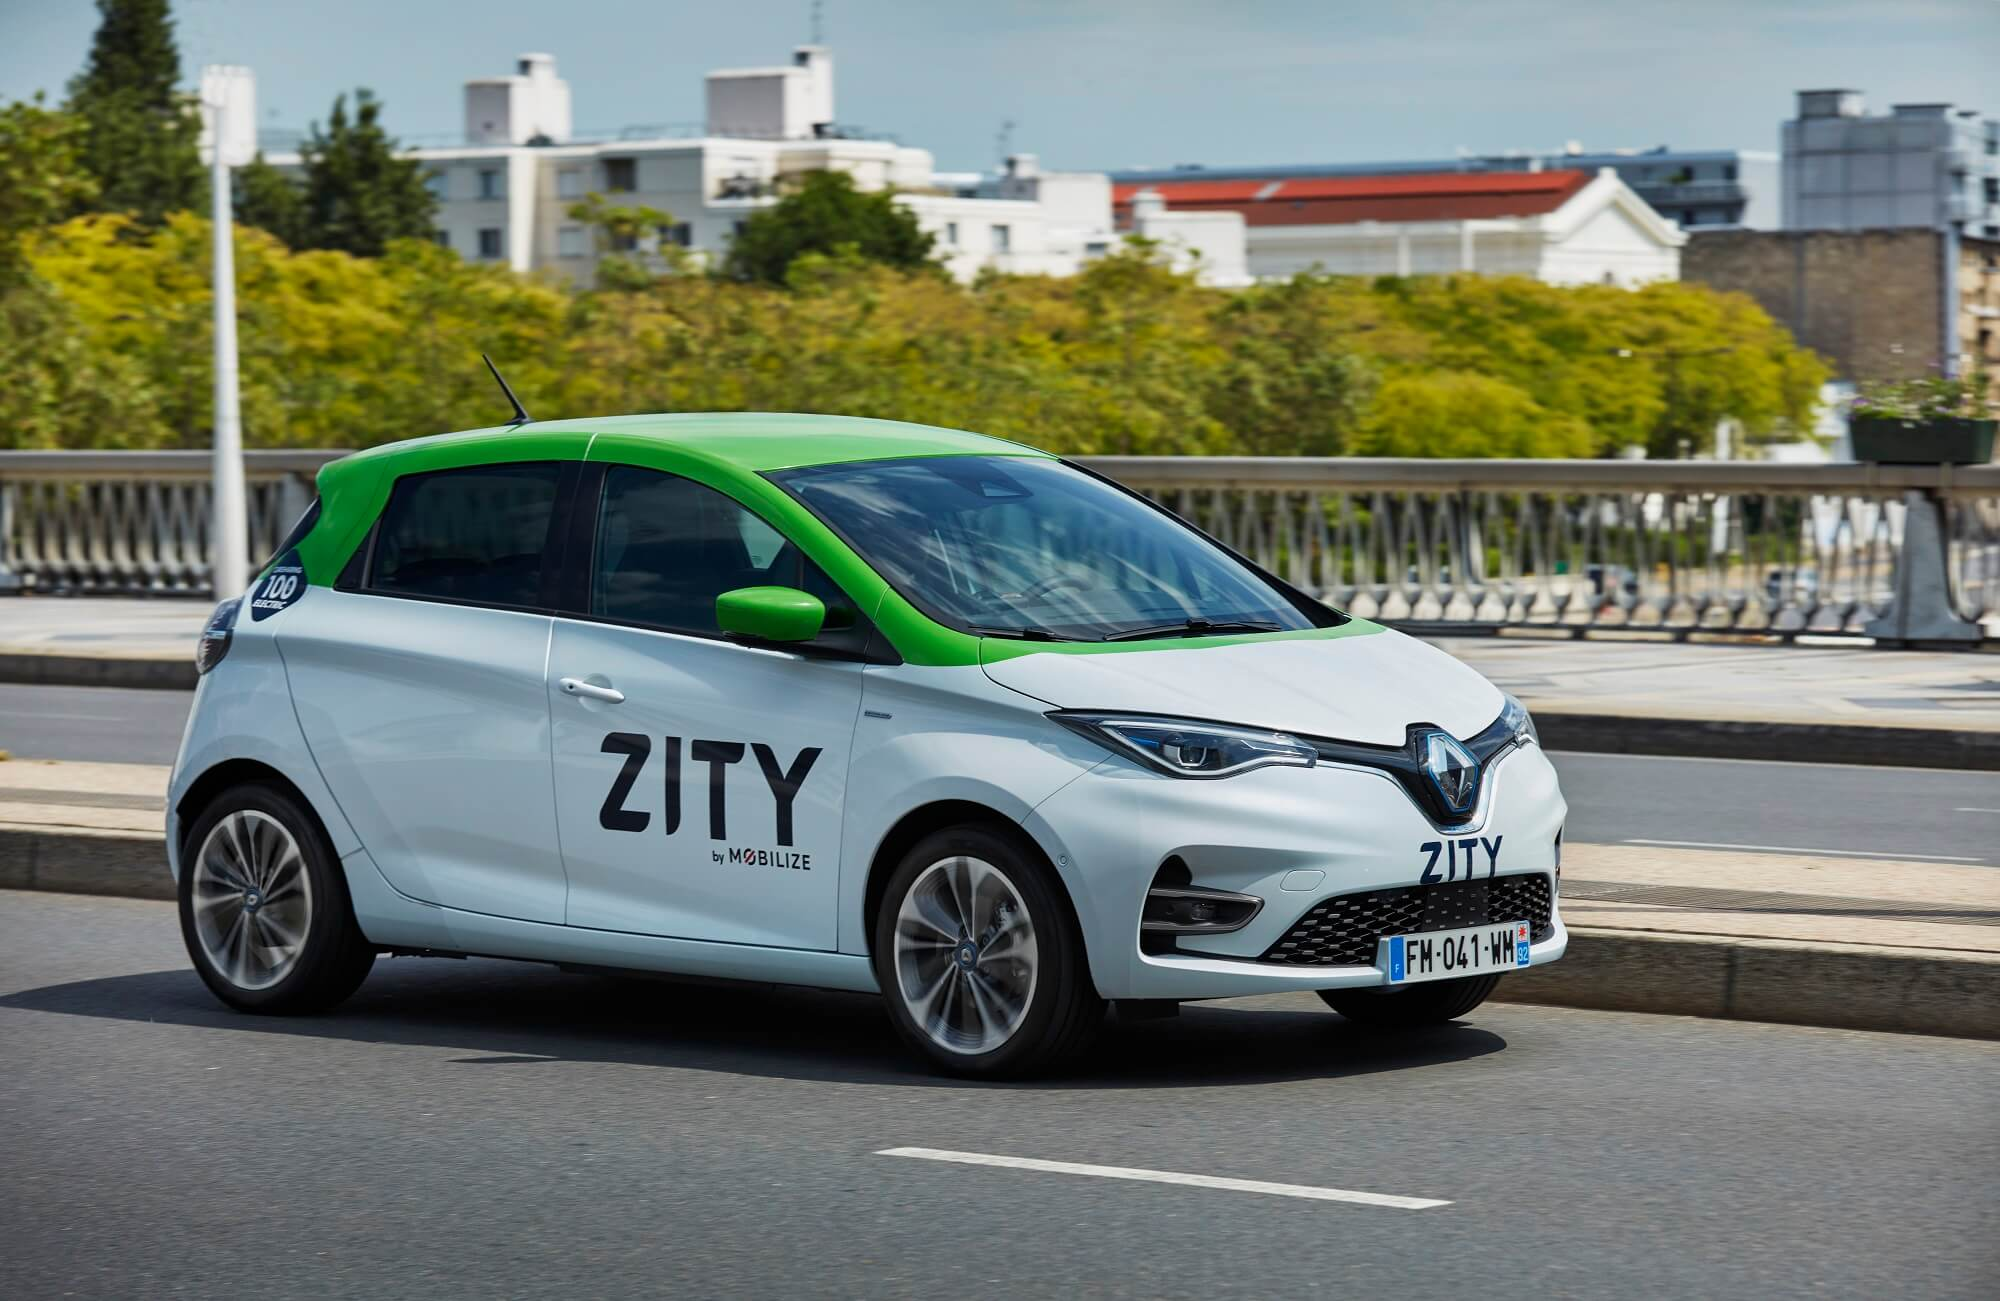 Zity by Mobilize